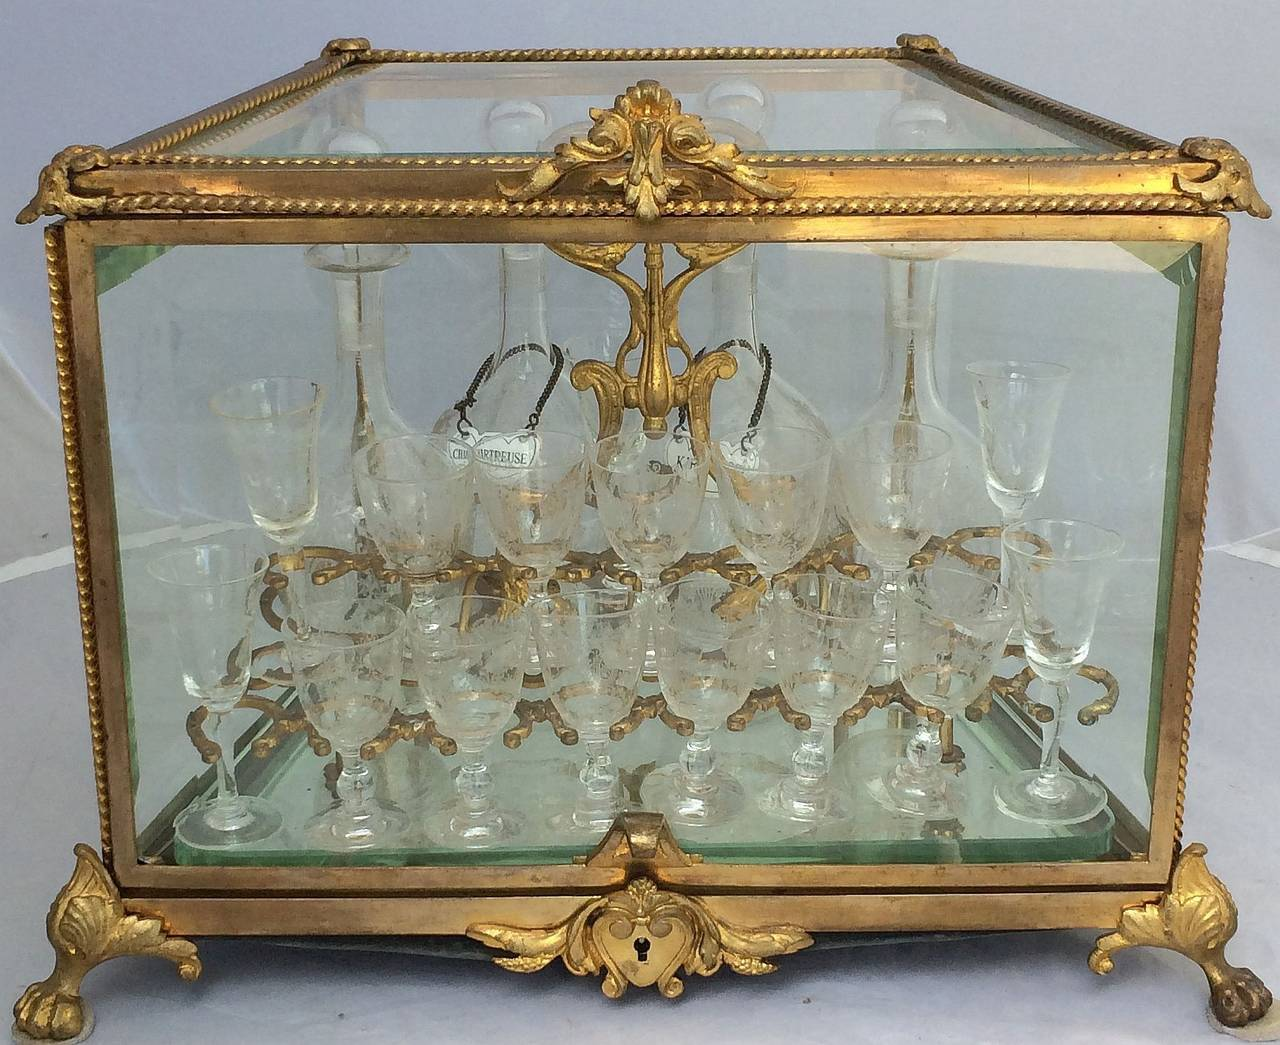 A handsome French Tantalus drinks set or Cave à Liqueur featuring a cabinet of gilt bronze and beveled glass with a mirrored glass base, housing a removable bronze doré stand, holding sixteen etched cordial or liqueur glasses and four etched